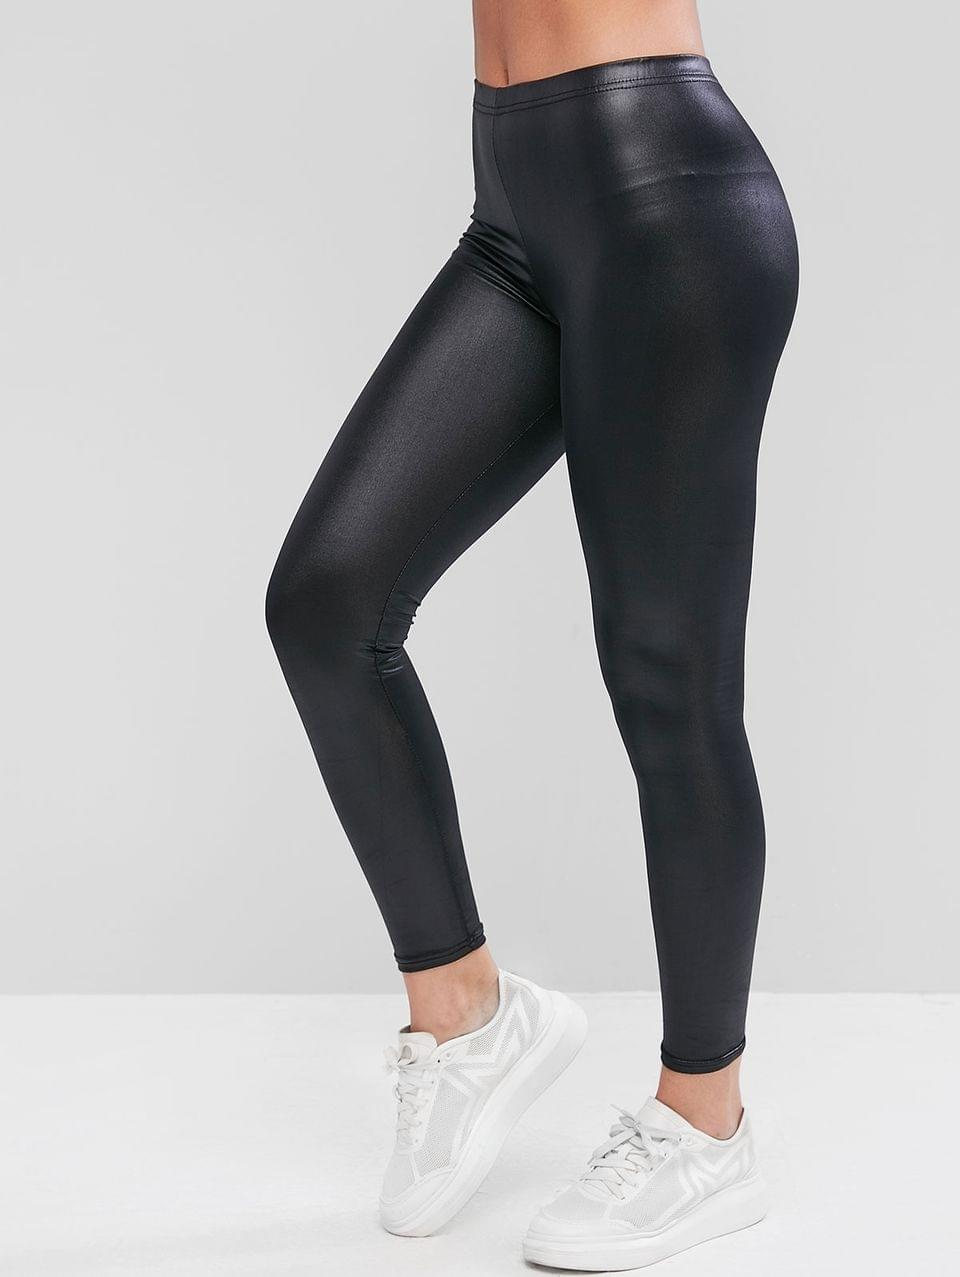 Women's Shiny Faux Leather Leggings - Black Xl